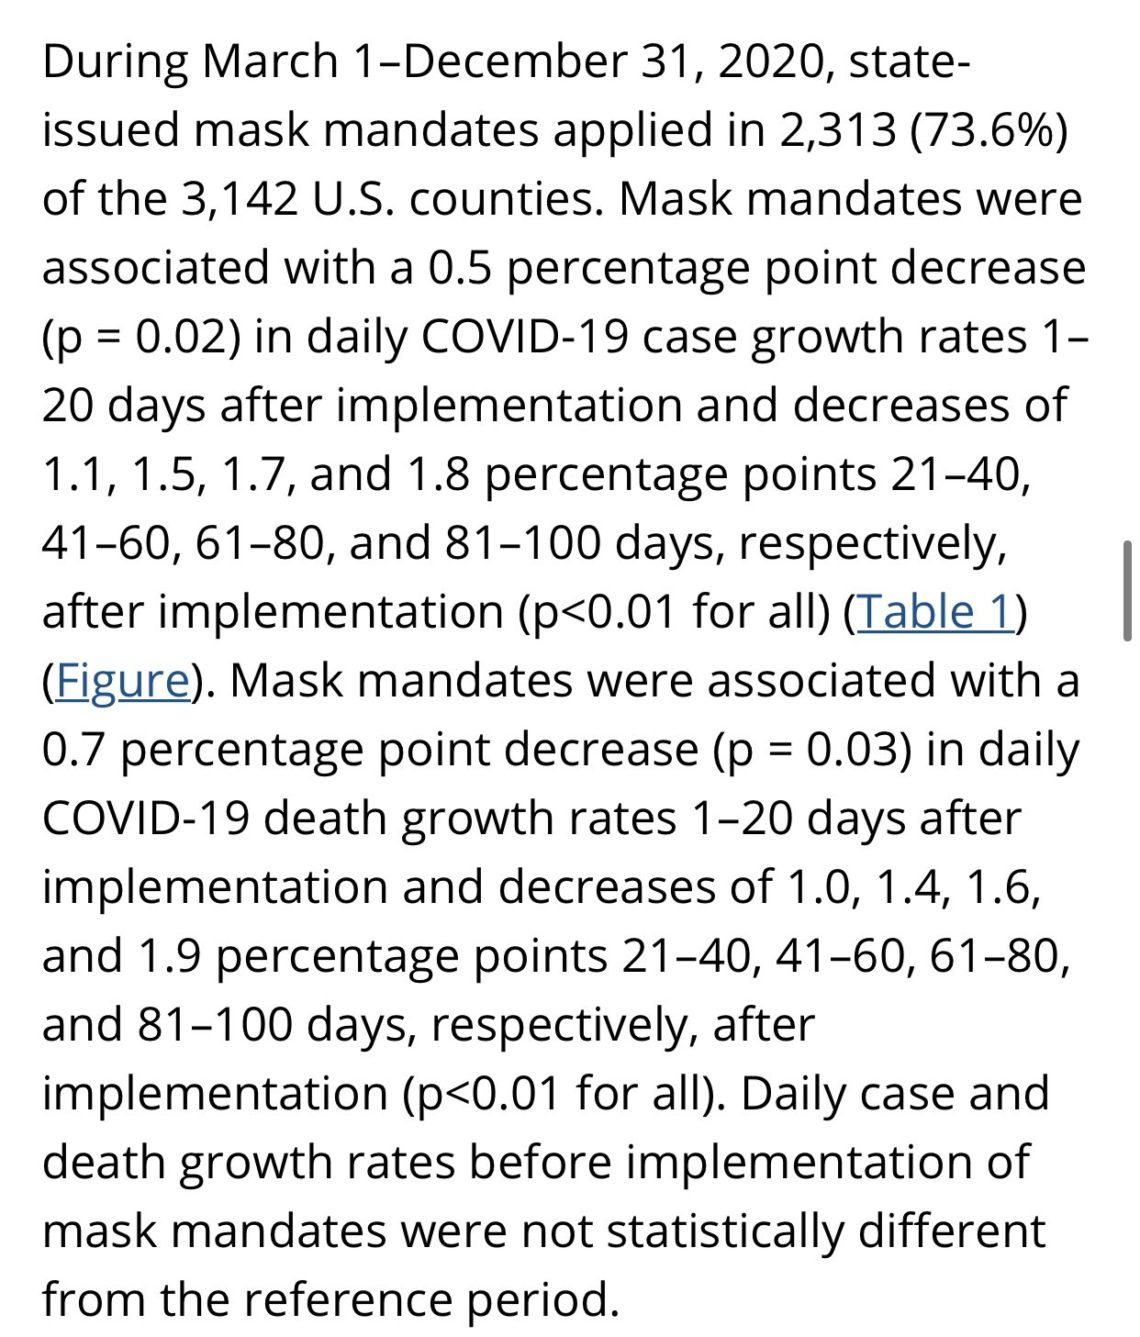 During March 1–December 31, 2020, state-issued mask mandates applied in 2,313 (73.6%) of the 3,142 U.S. counties. Mask mandates were associated with a 0.5 percentage point decrease (p = 0.02) in daily COVID-19 case growth rates 1–20 days after implementation and decreases of 1.1, 1.5, 1.7, and 1.8 percentage points 21–40, 41–60, 61–80, and 81–100 days, respectively, after implementation (p